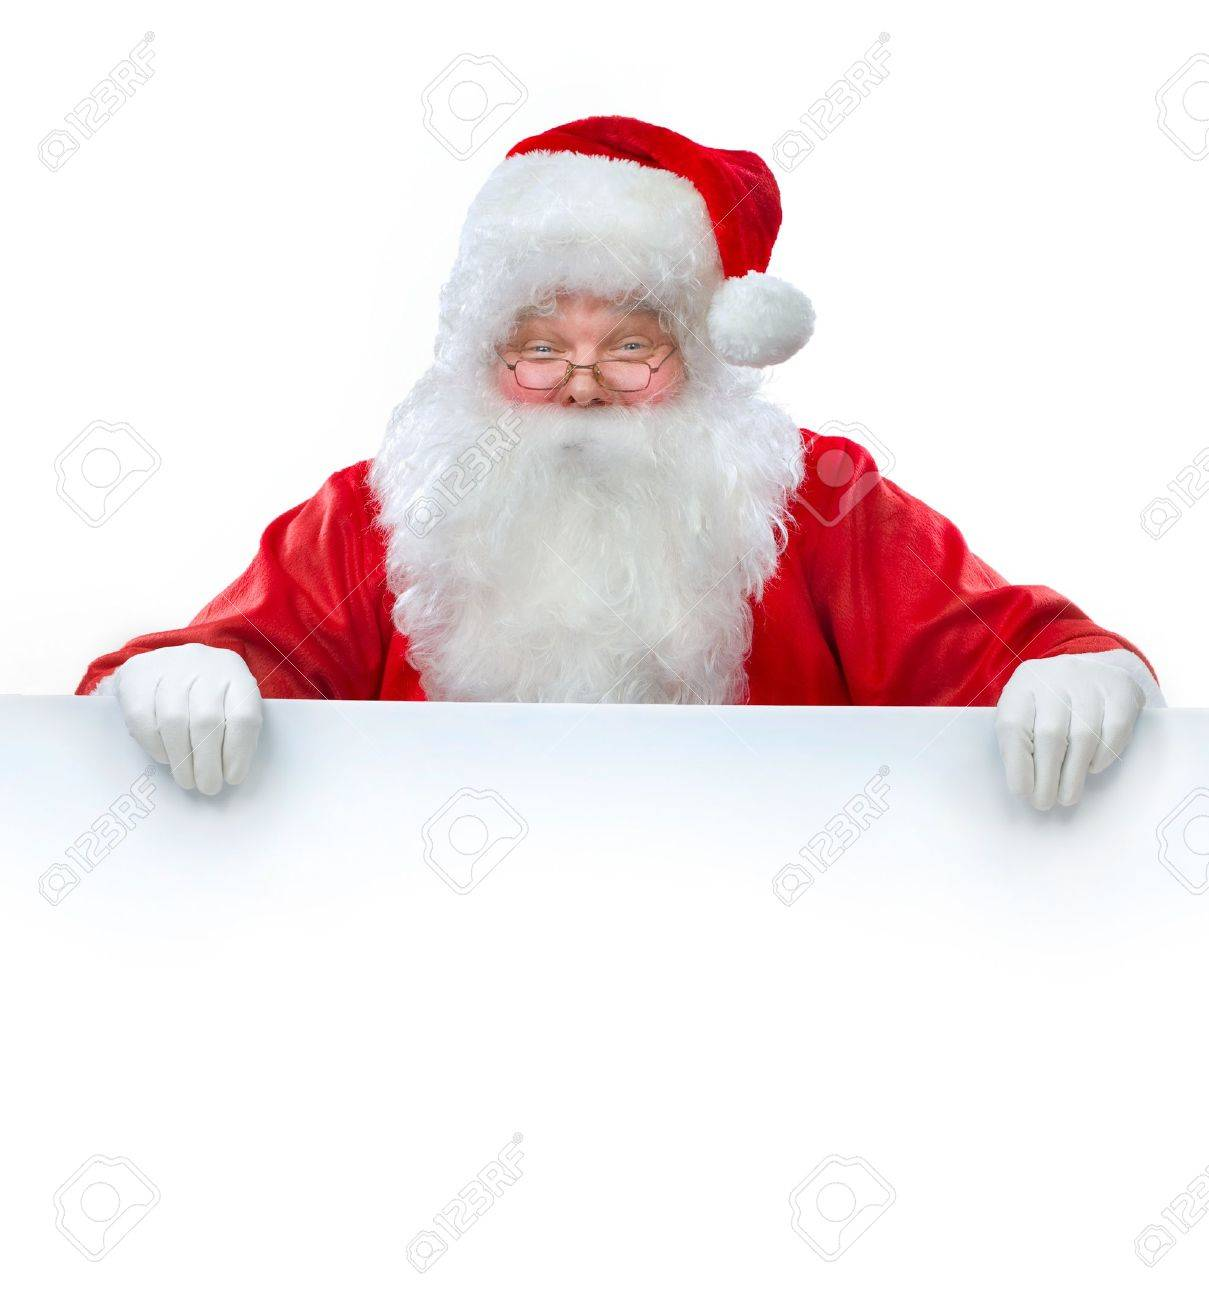 Santa Claus holding Banner with Space for Your Text Stock Photo - 11559905